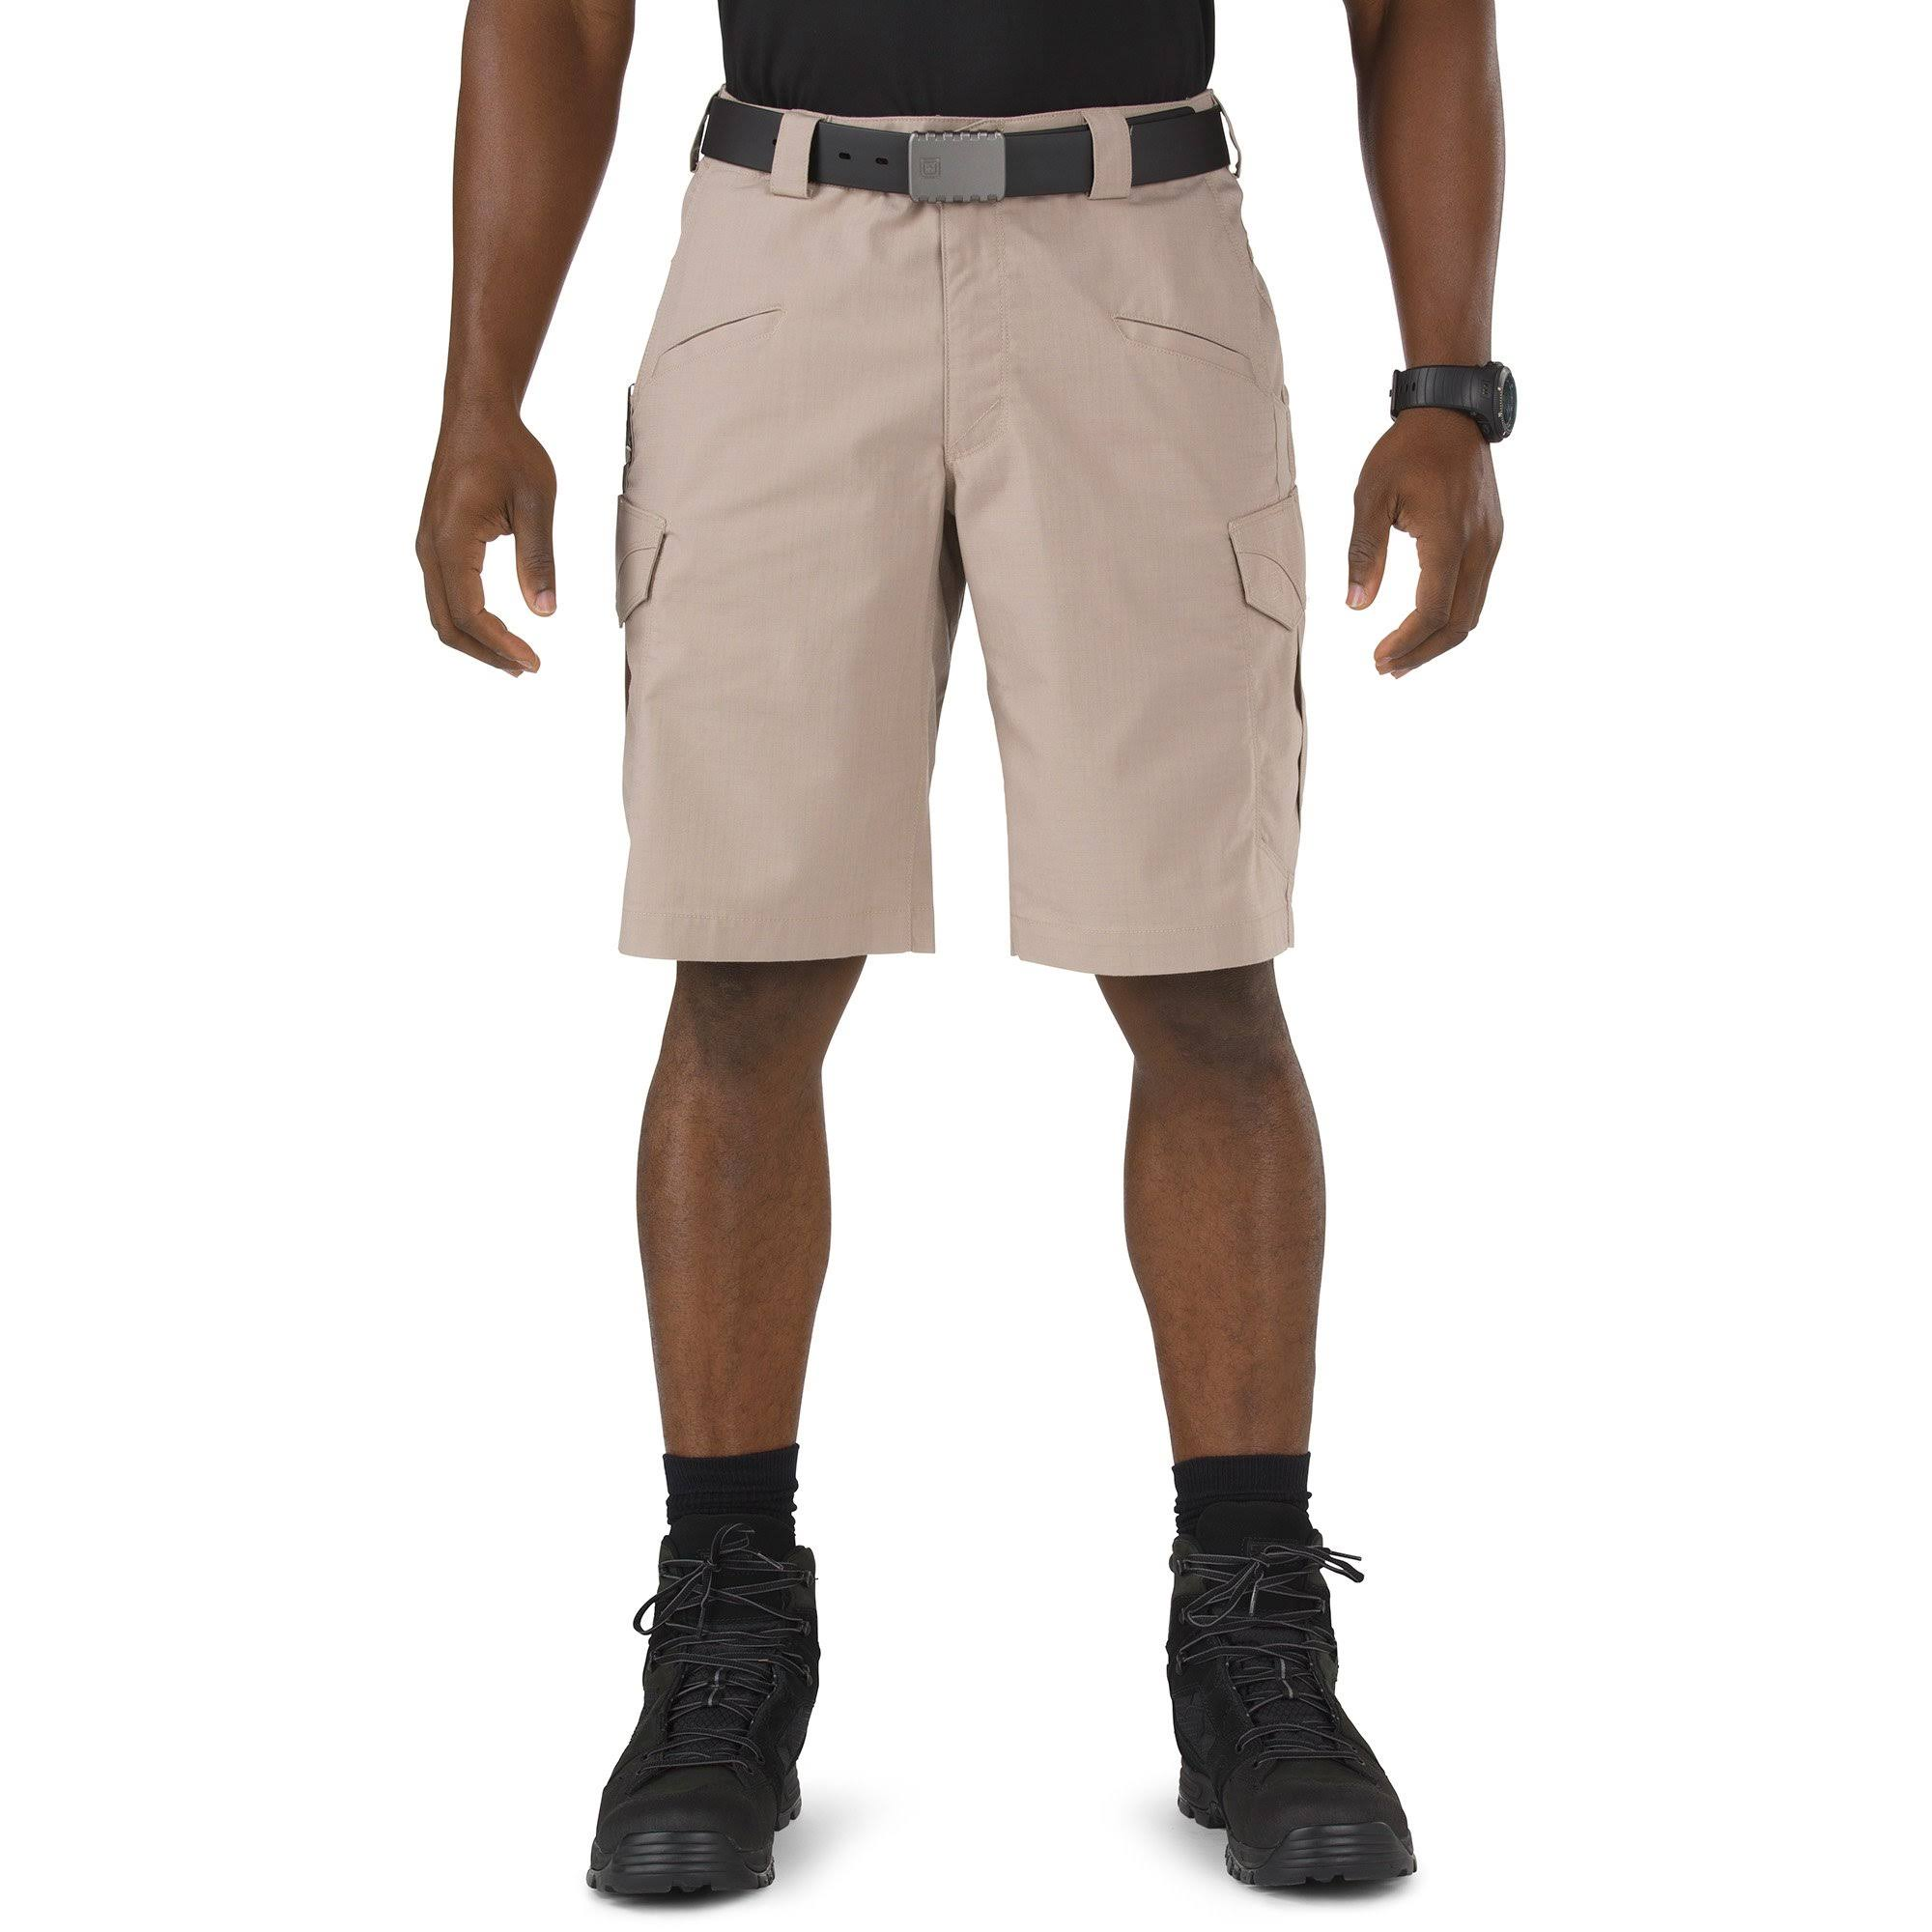 5.11 Tactical Stryke Shorts - Khaki - 73327-055-36